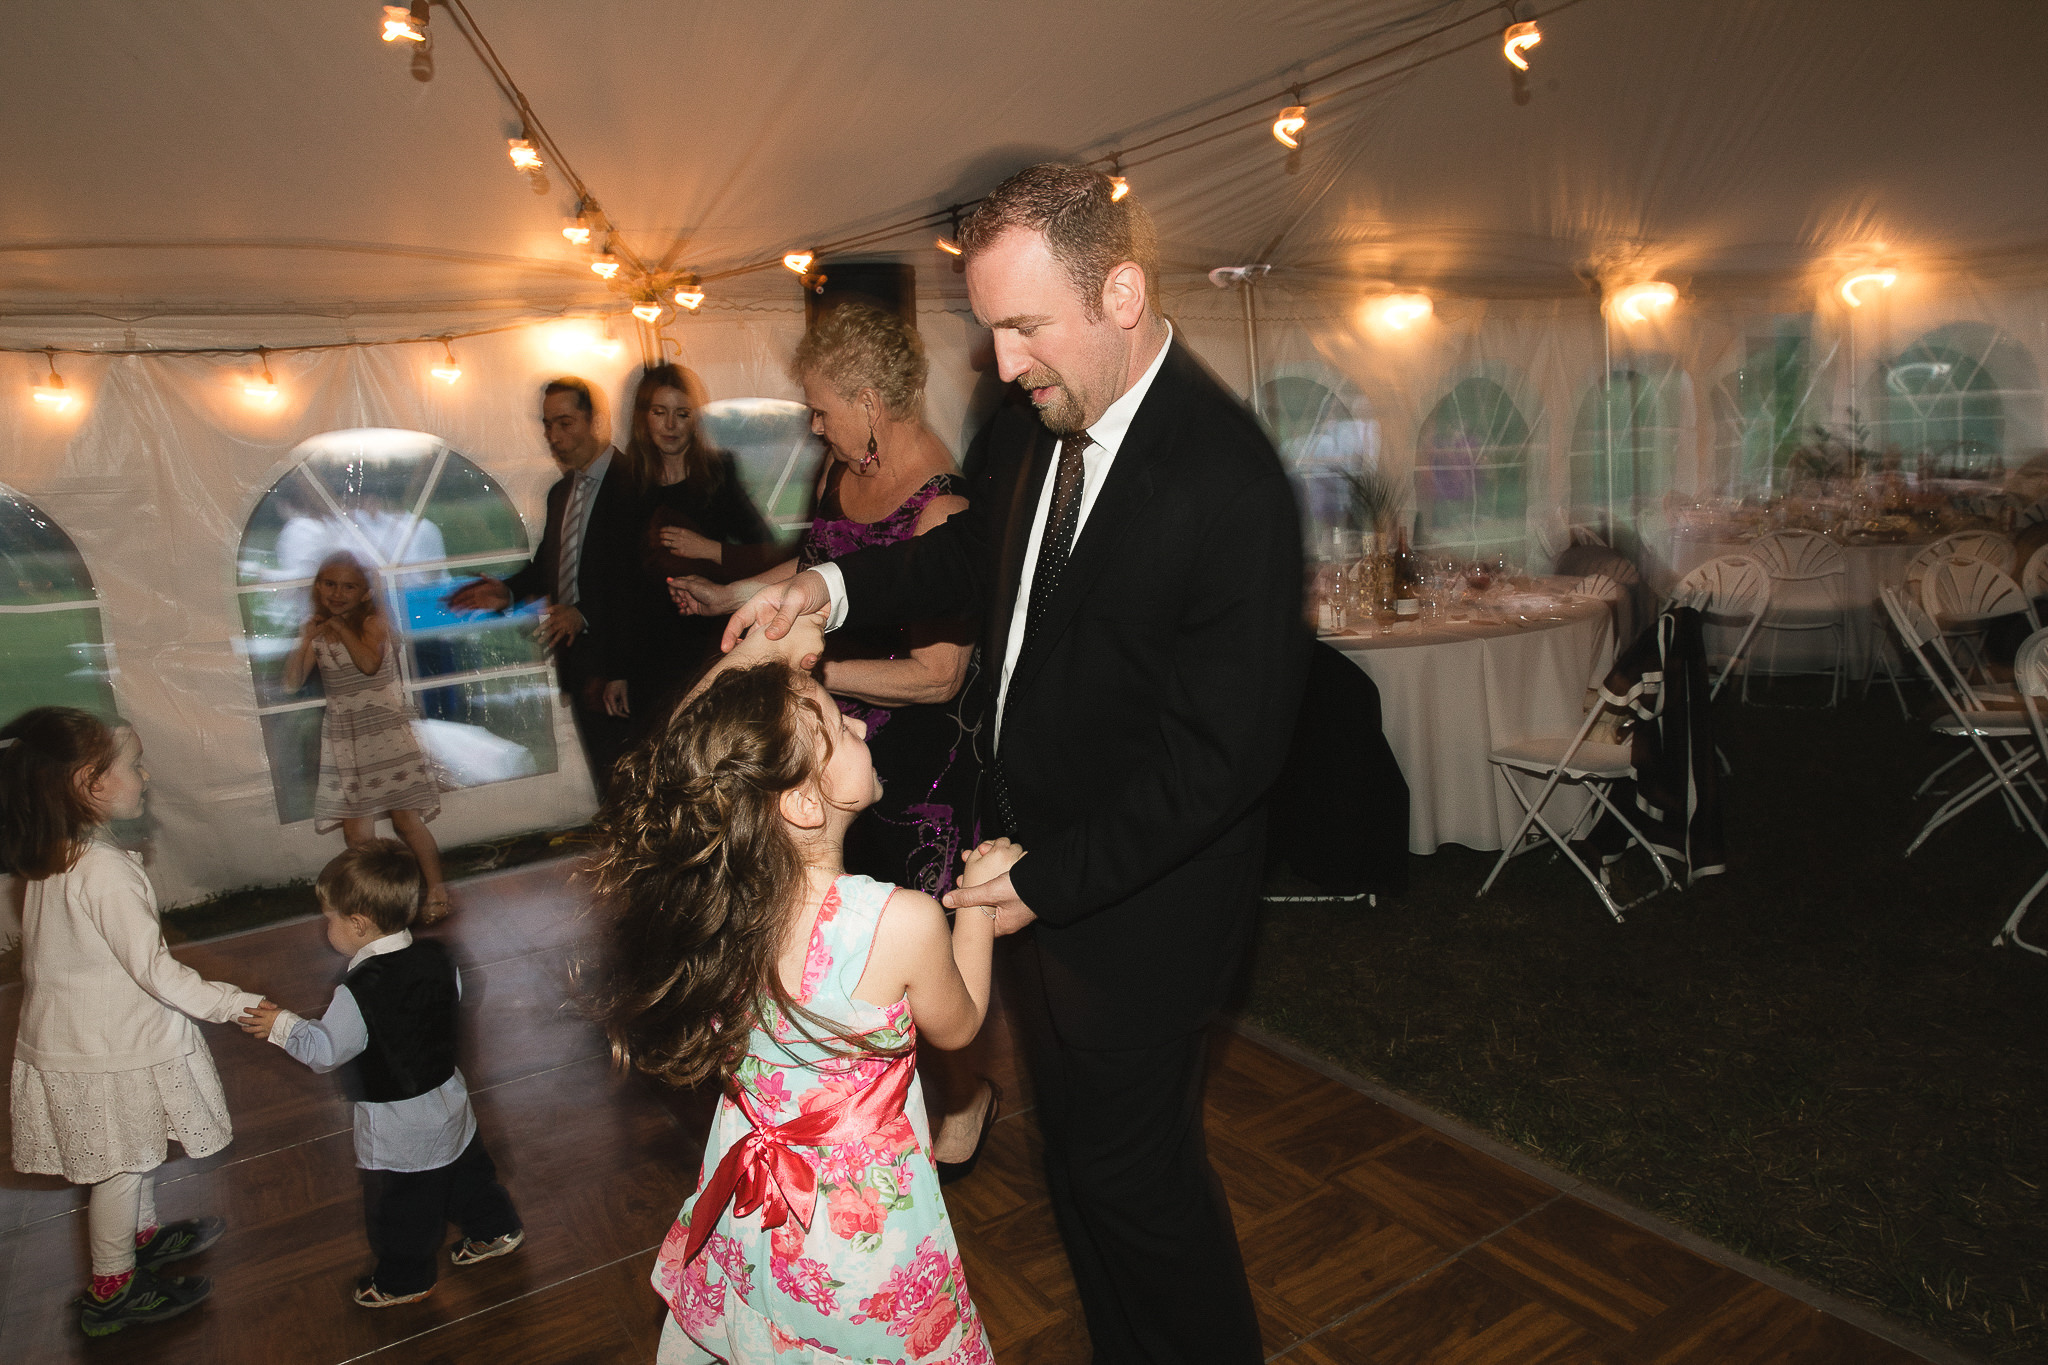 dance photos tent wedding